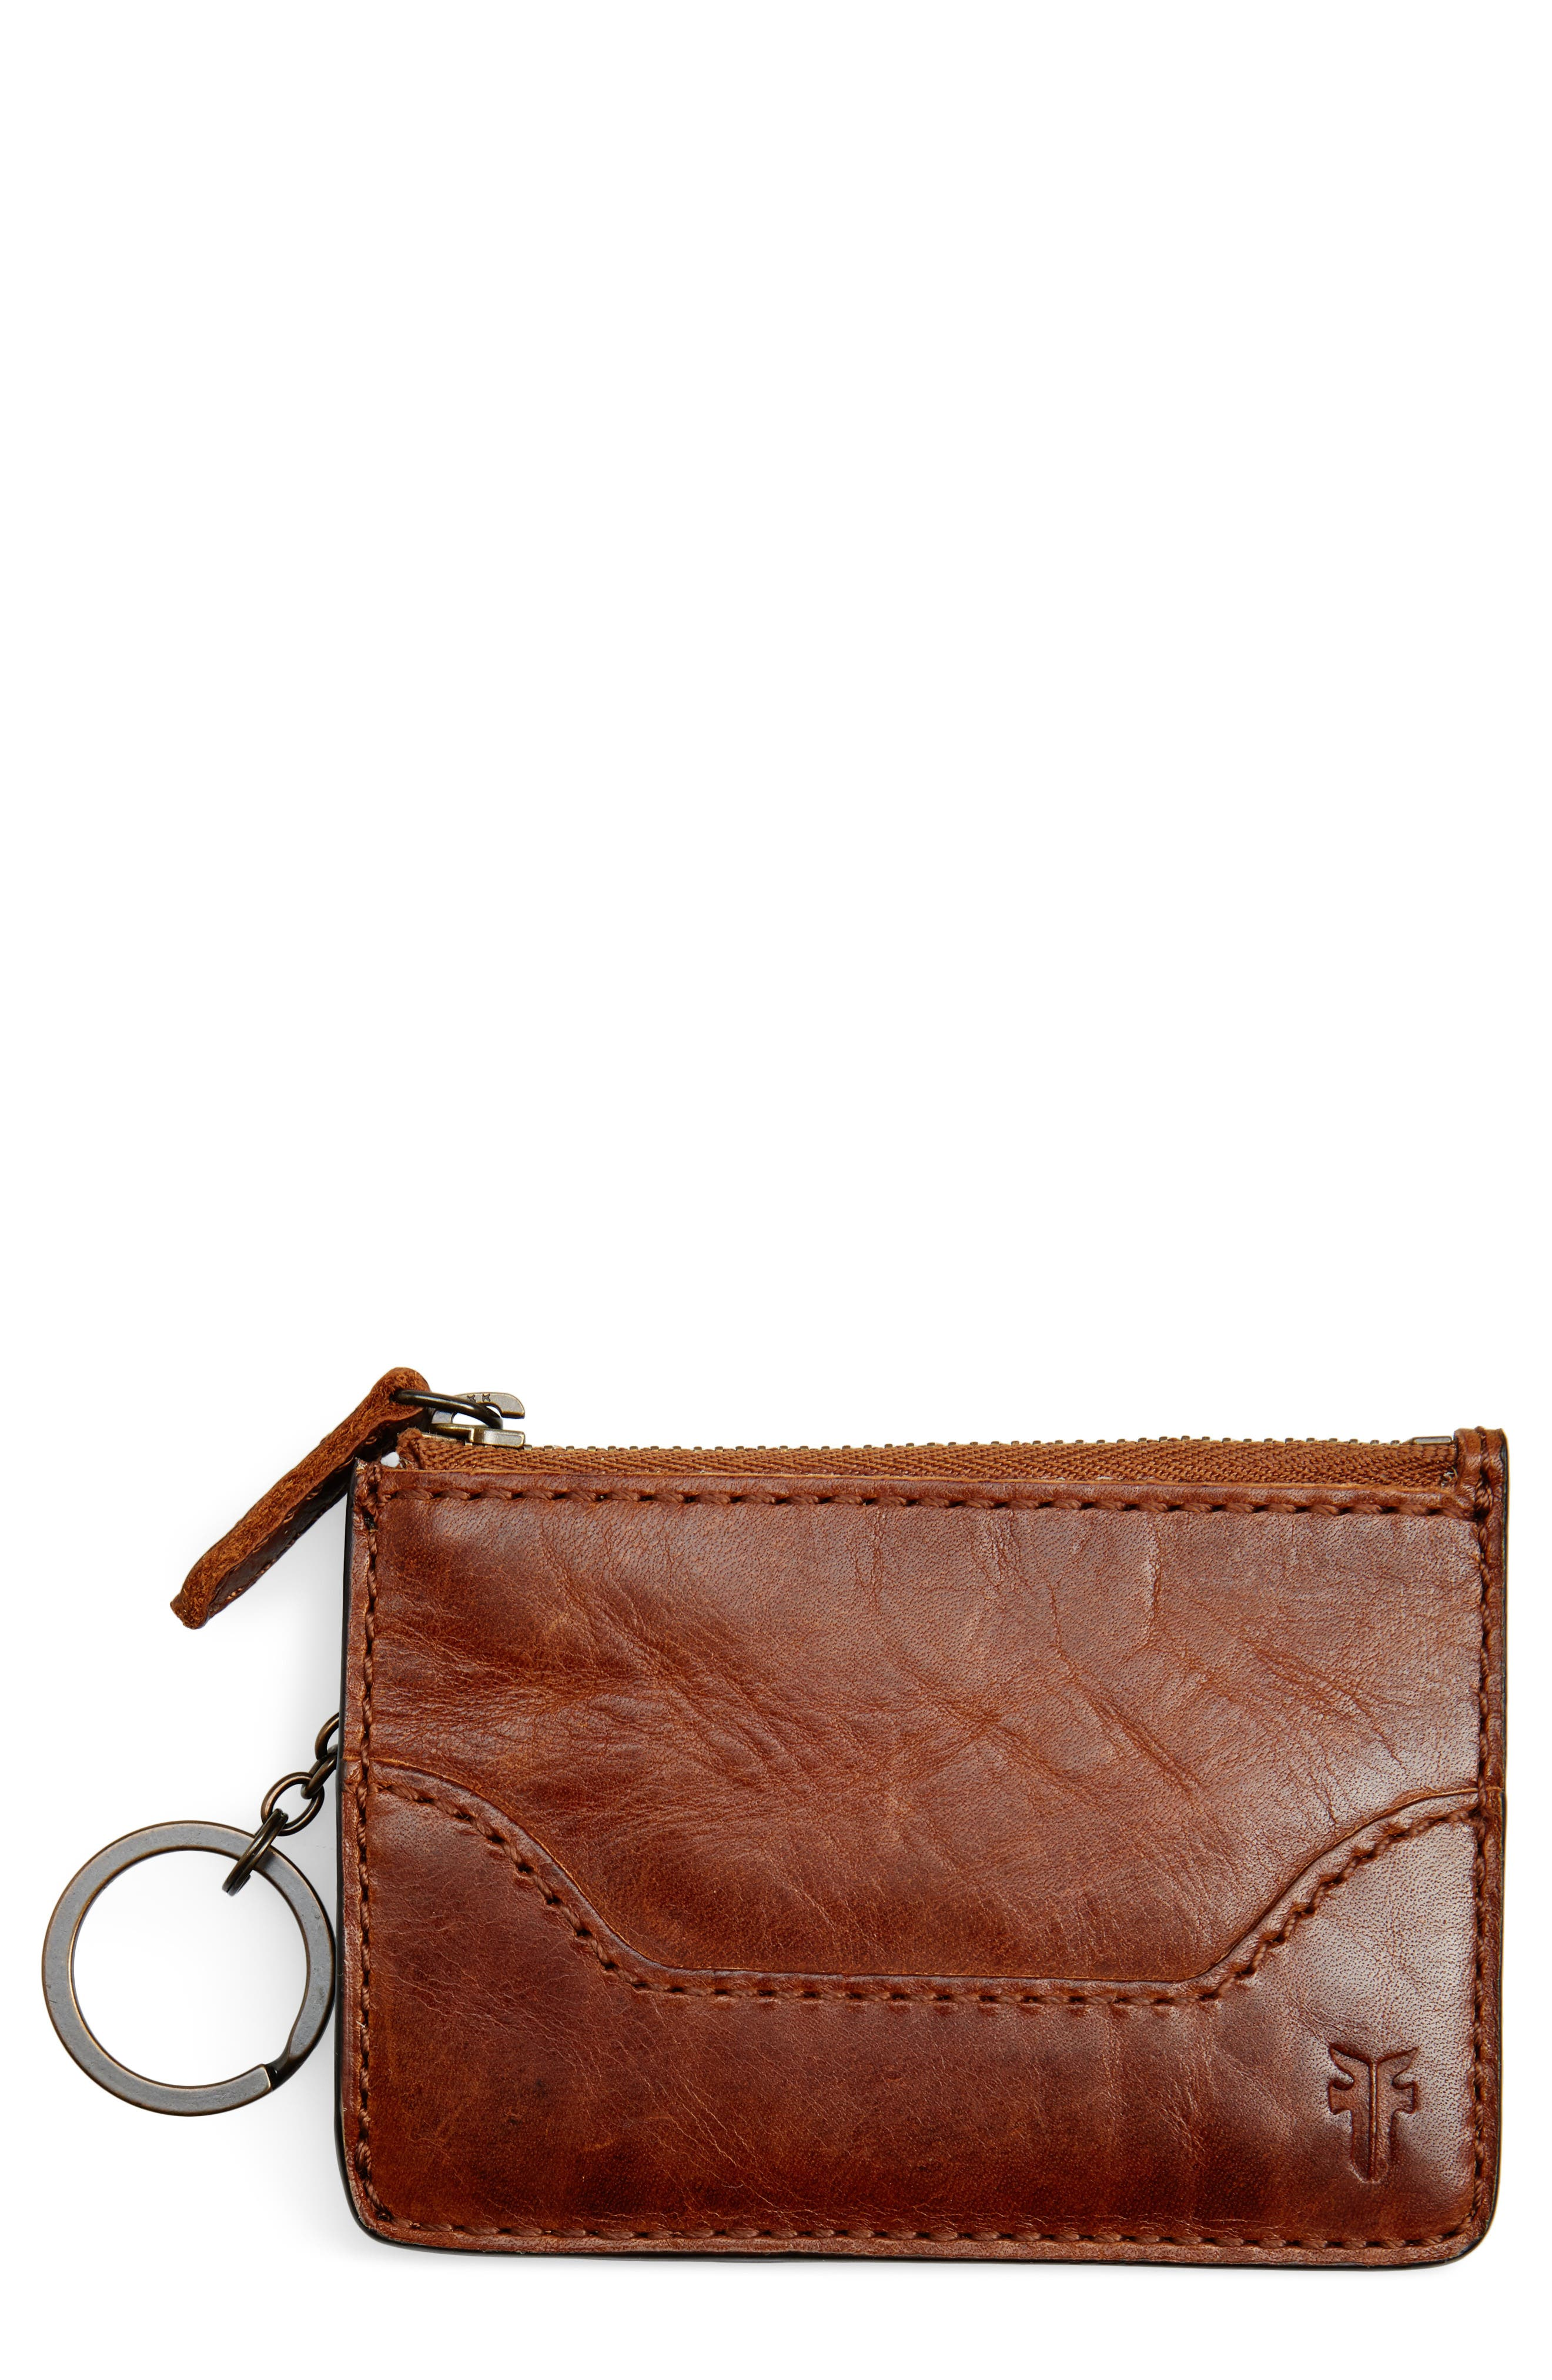 Alternate Image 1 Selected - Frye Melissa Leather Card Holder with Key Ring